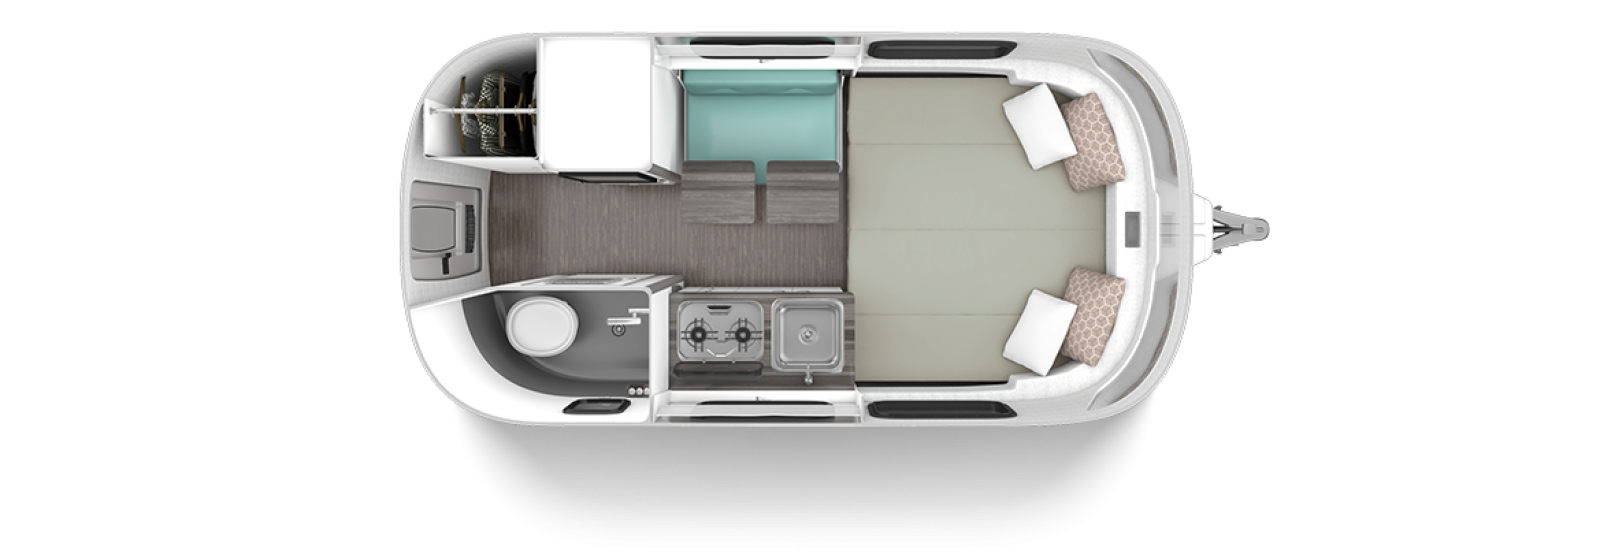 2020 Airstream Nest 16FB Clutch Blue Floor plan